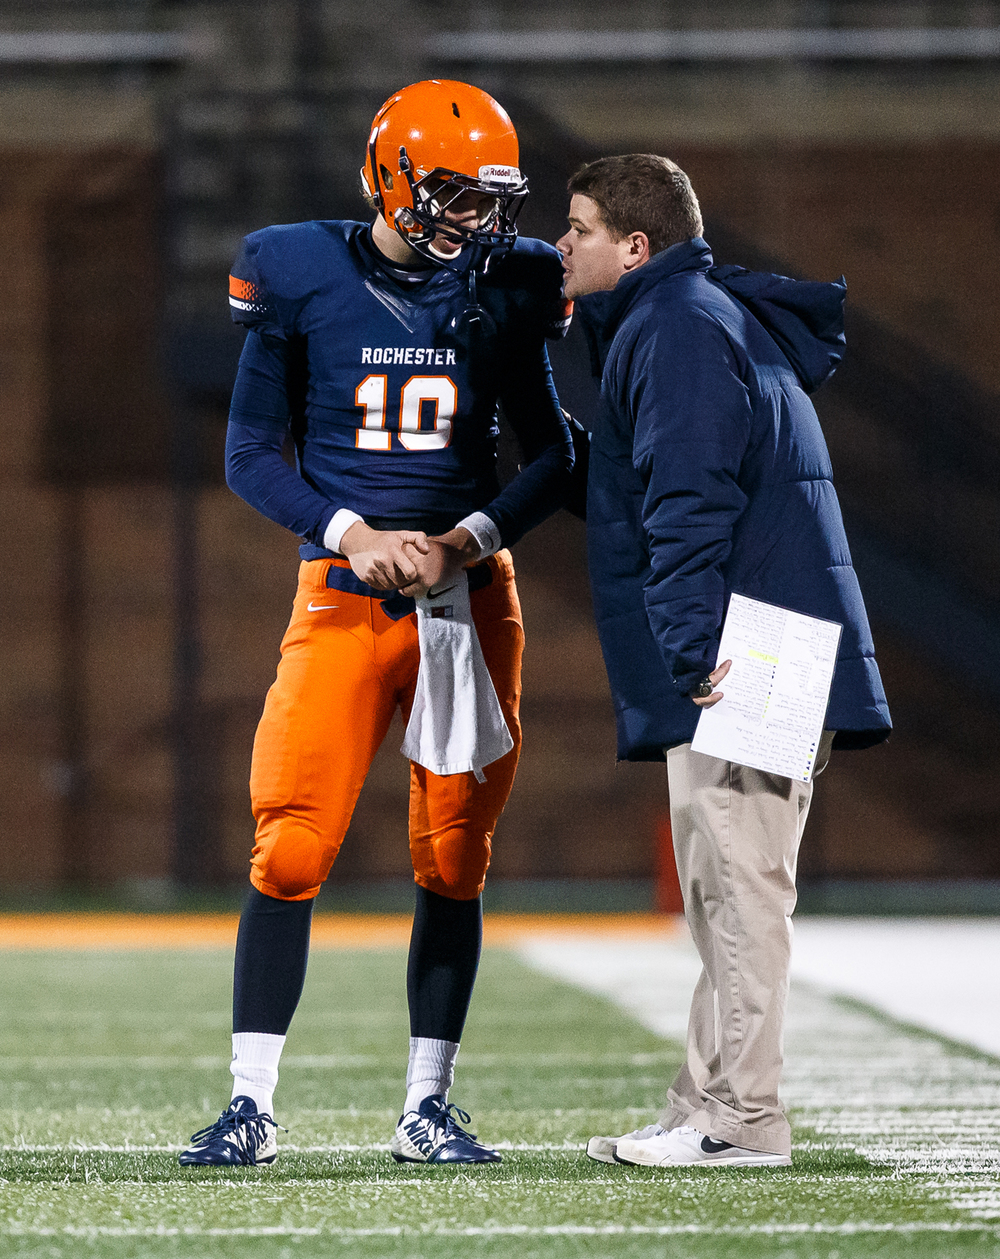 Rochester head football coach Derek Leonard takes with Rochester's quarterback Dan Zeigler (10) along the sideline as they take on Chicago Phillips in the first half during the IHSA Class 4A state championship game at Memorial Stadium, Friday, Nov. 28, 2014, in Champaign, Ill. Justin L. Fowler/The State Journal-Register